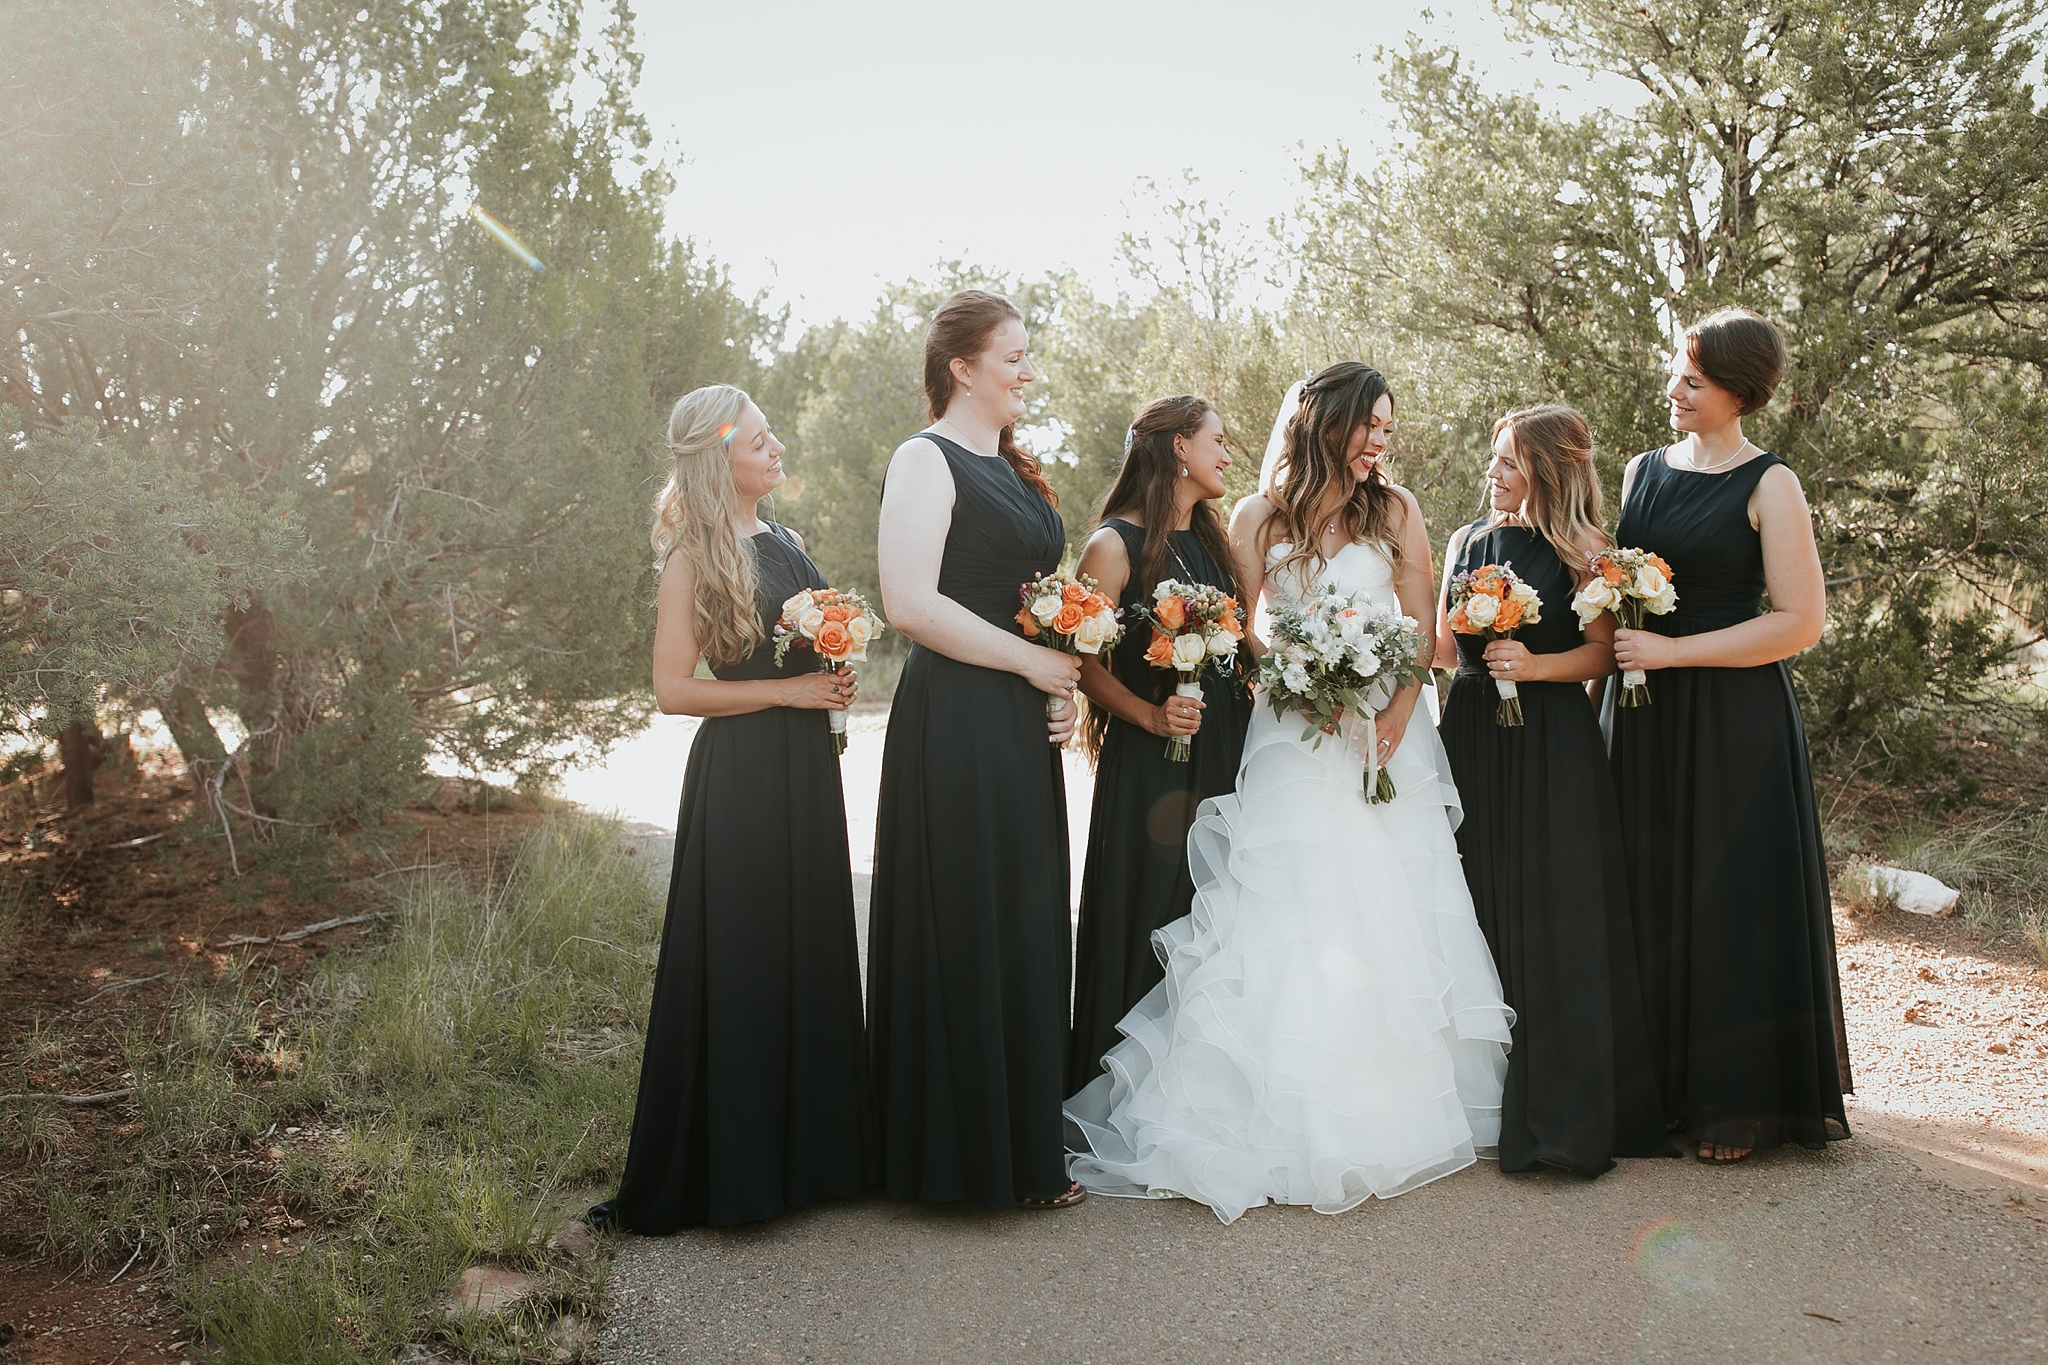 Alicia+lucia+photography+-+albuquerque+wedding+photographer+-+santa+fe+wedding+photography+-+new+mexico+wedding+photographer+-+new+mexico+wedding+-+new+mexico+wedding+-+colorado+wedding+-+bridesmaids+-+bridesmaid+style_0026.jpg